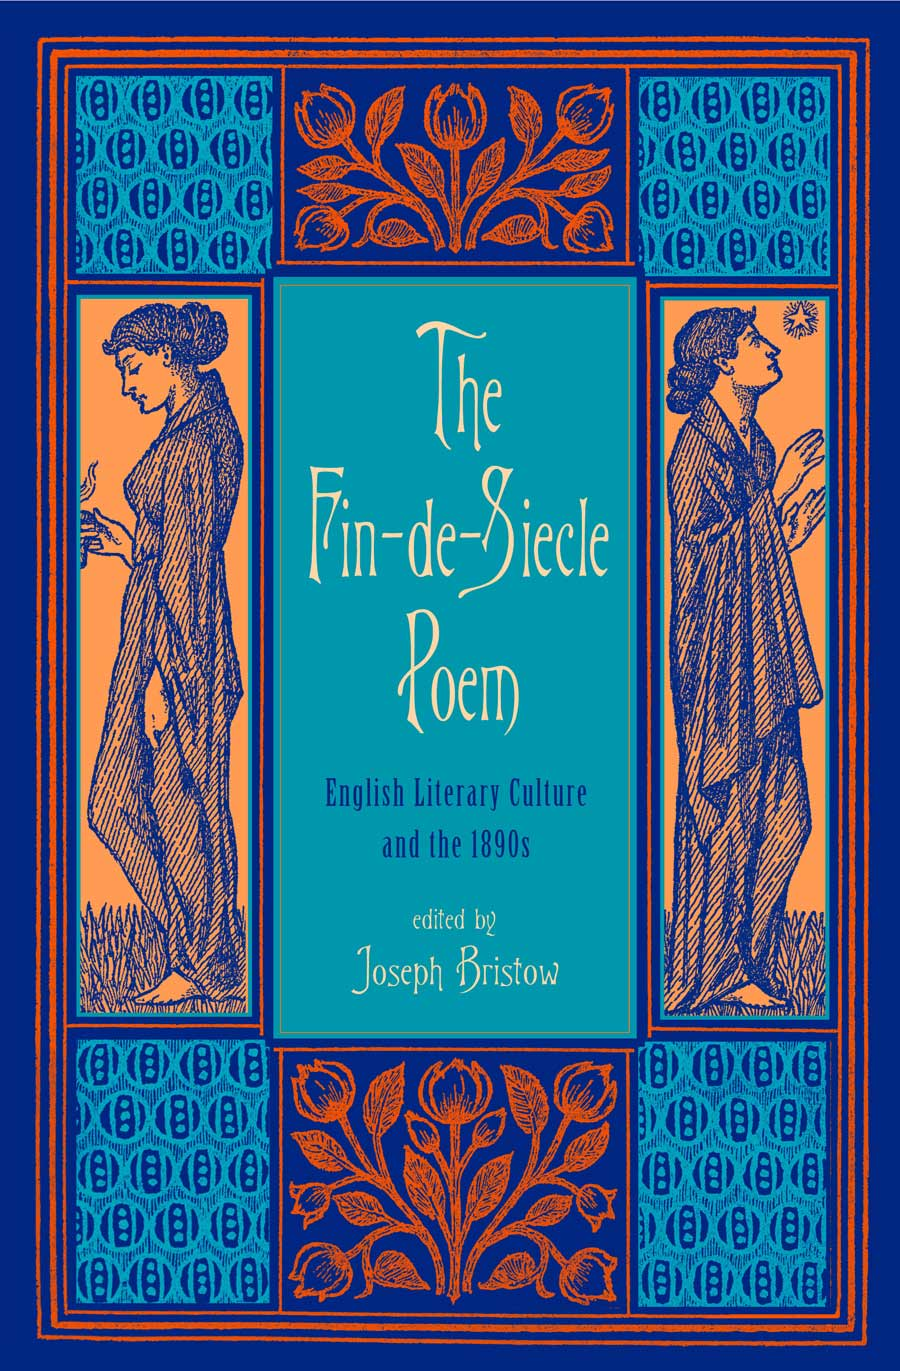 the cultural production of matthew arnold · ohio university press cover of the fin de siècle poem